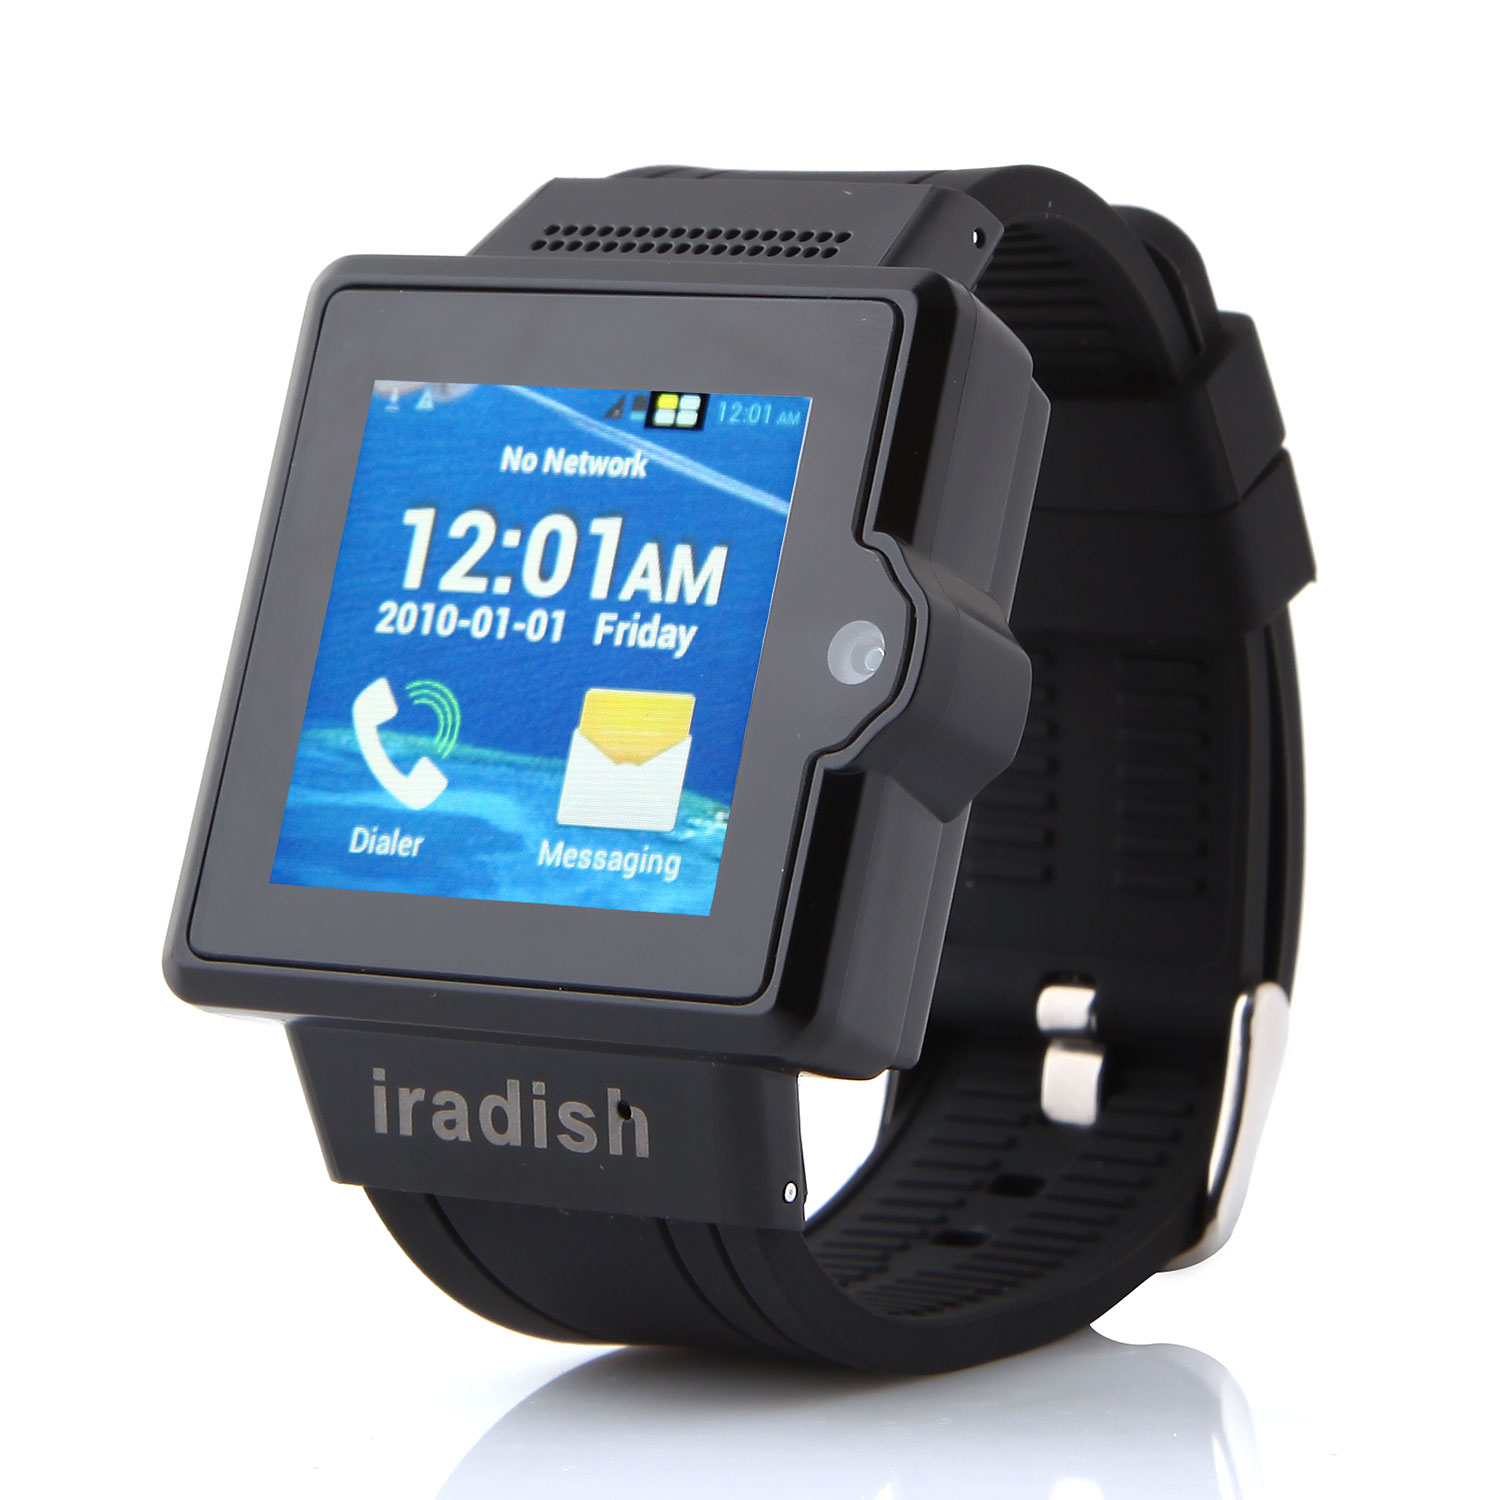 I6 Watch Phone 1.54 Inch MTK6577 Android 4.0 Camera 4GB GPS 3G - Black